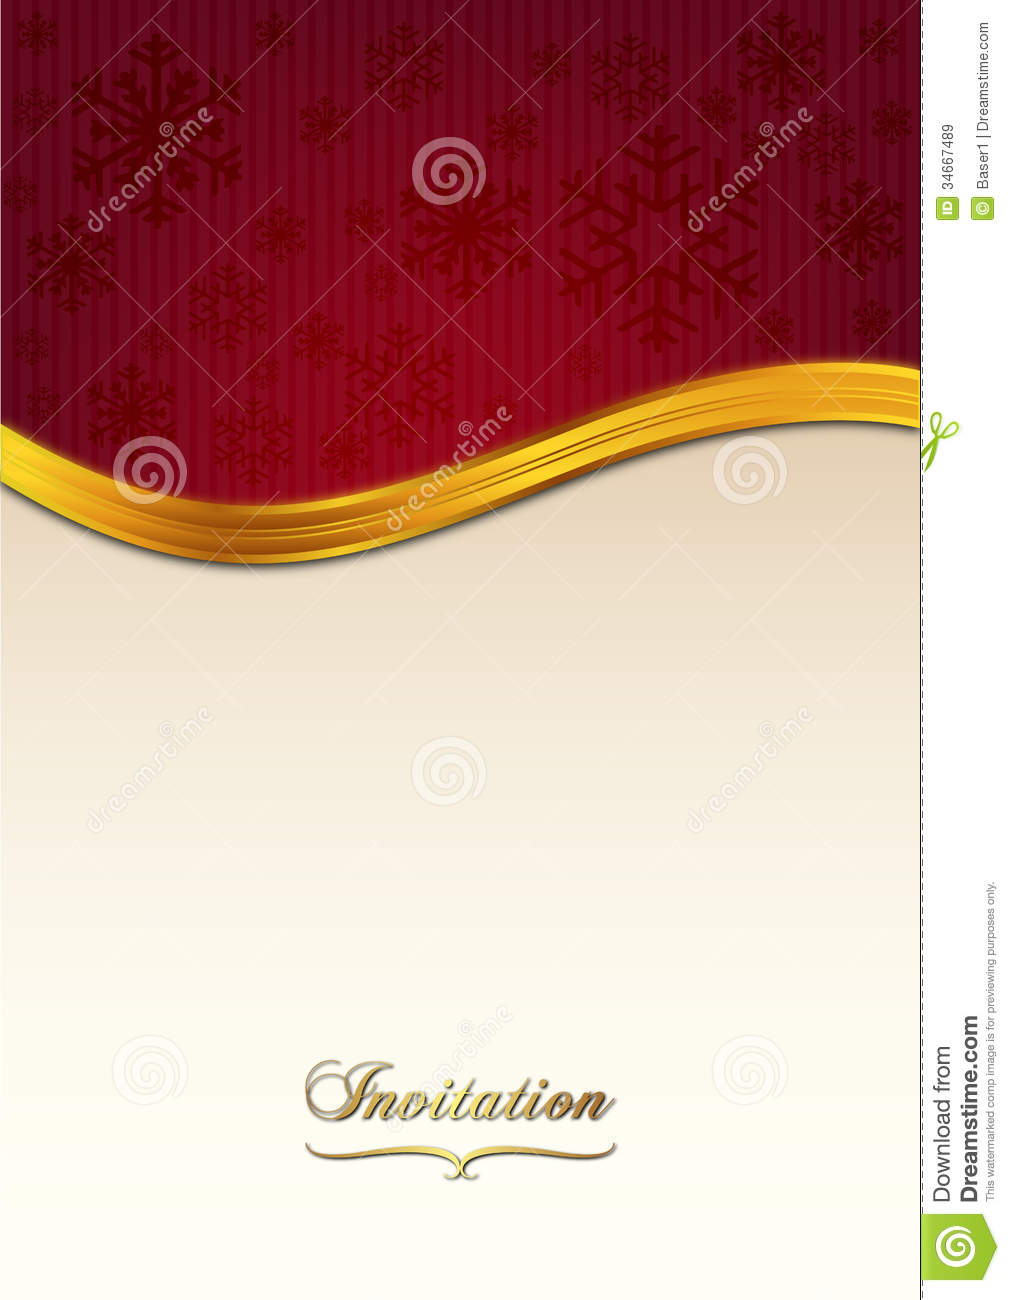 Red Invitation Paper Stock Image Image Of Shiny Celebration 34667489